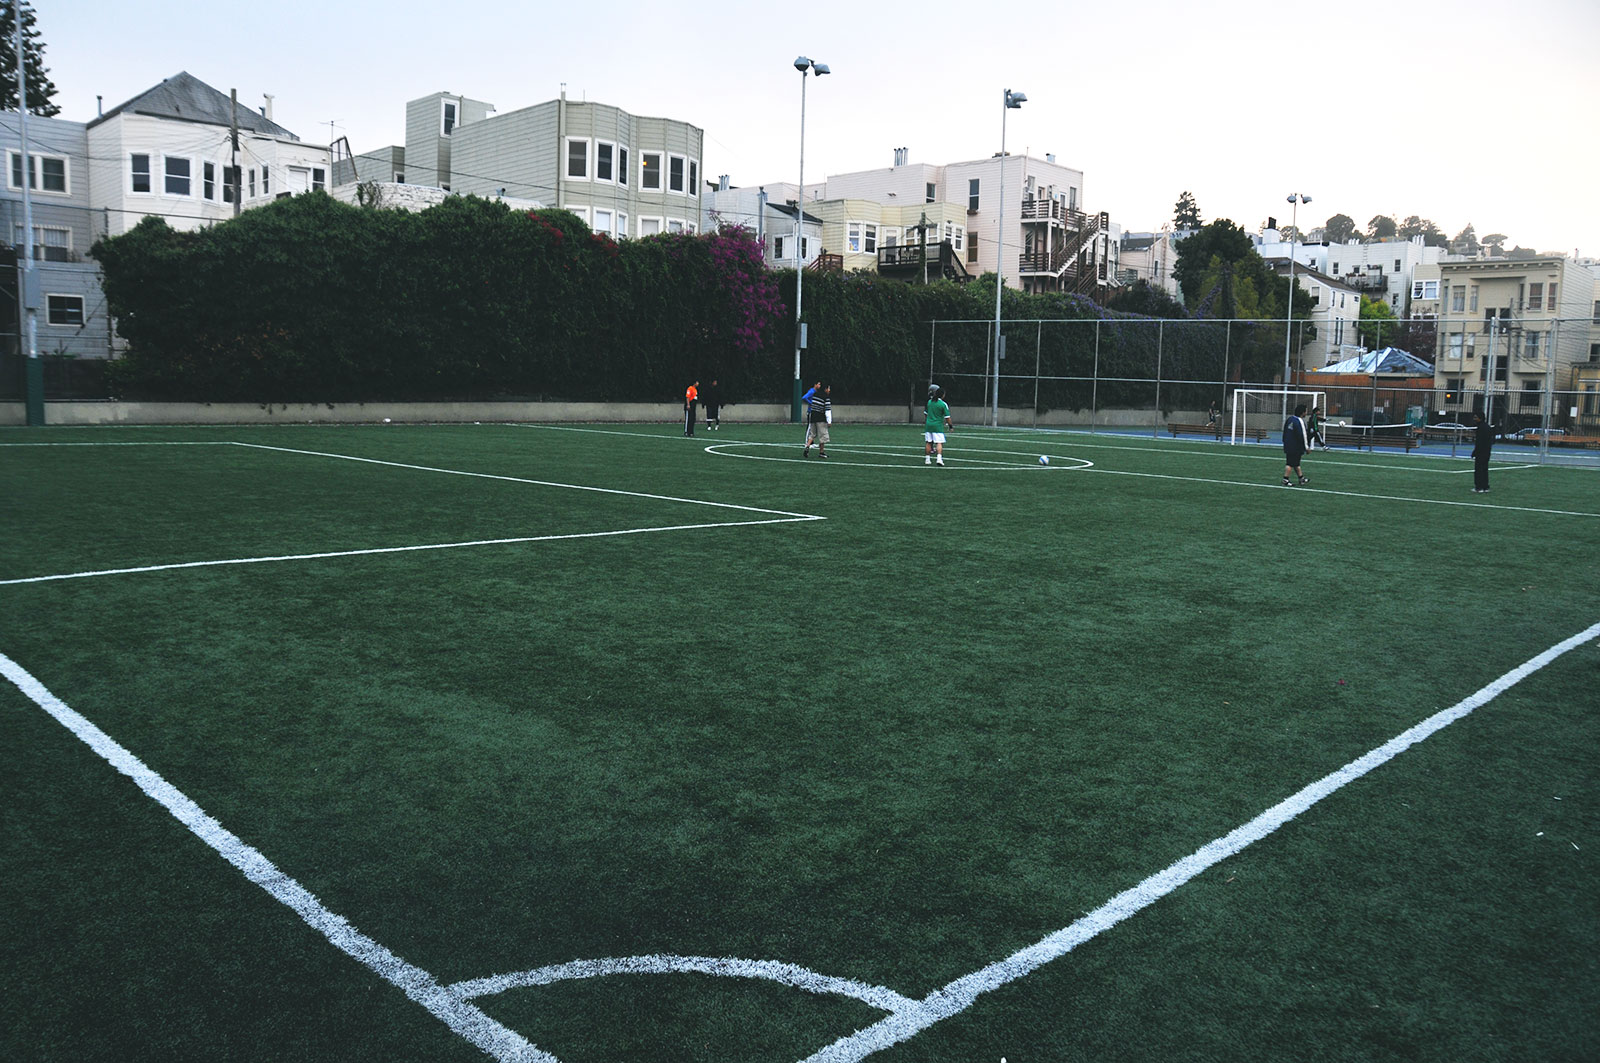 A picture of Mission Playground's Soccer Field